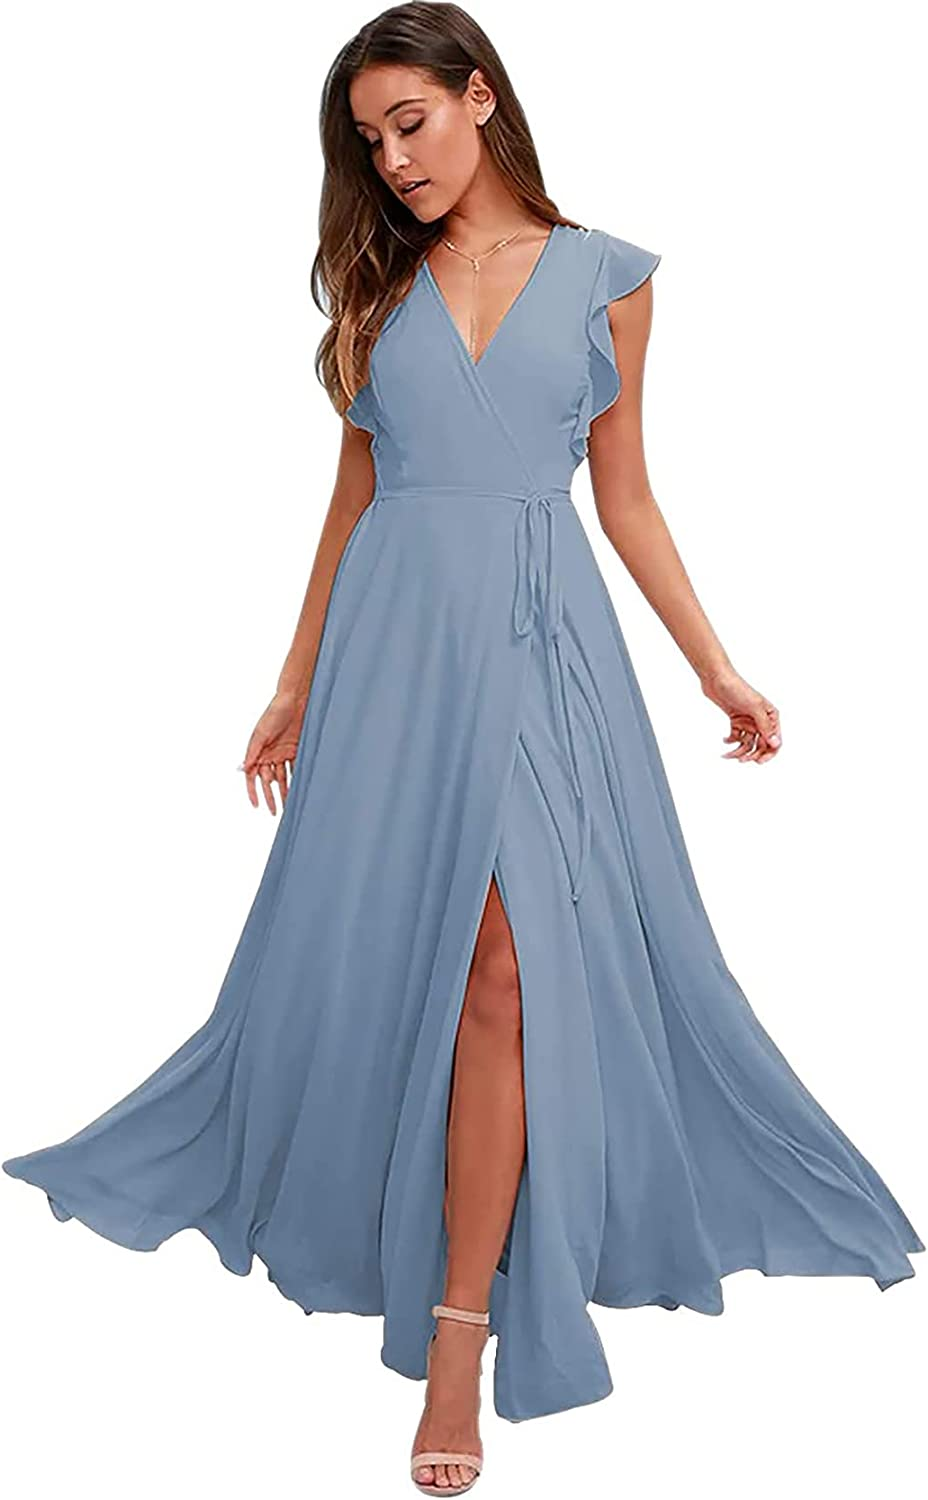 Mcmiya Women's Bridesmaid Dresses with Sleeves Long Chiffon Prom Dress V-Neck Slit A-Line Formal Evening Gown